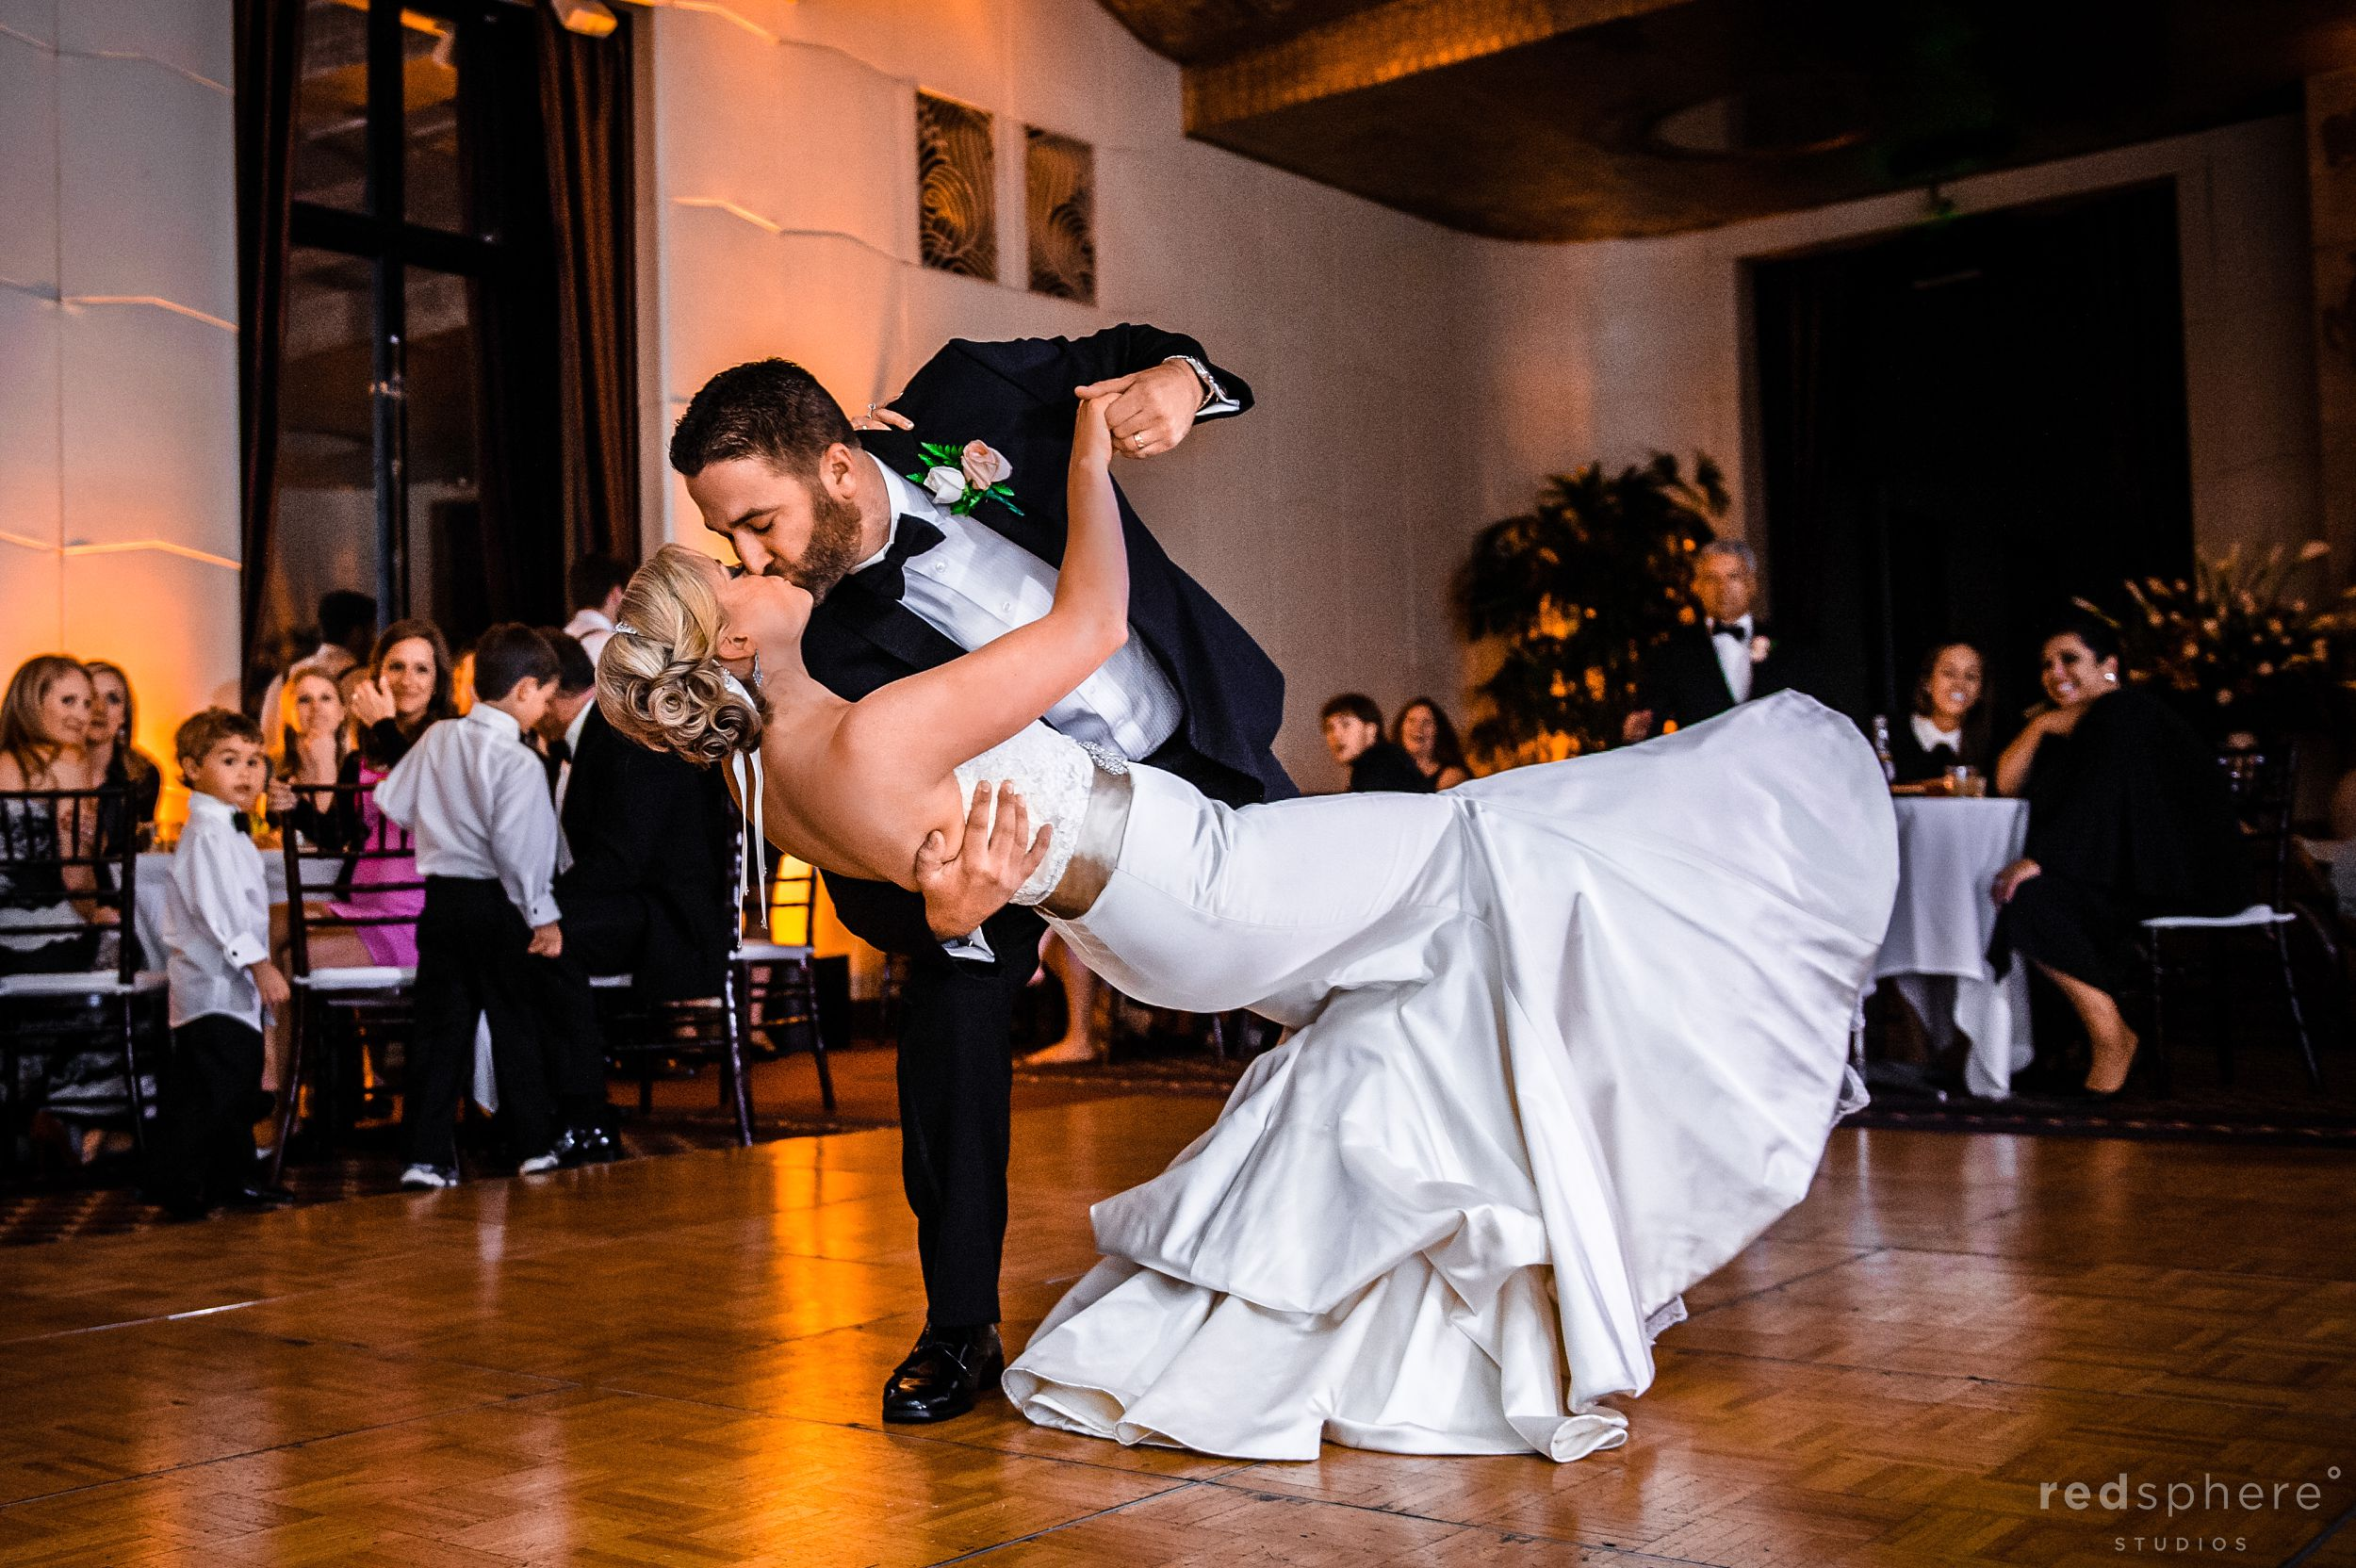 Bride and Groom Share a Kiss While Dancing After Wedding Ceremony